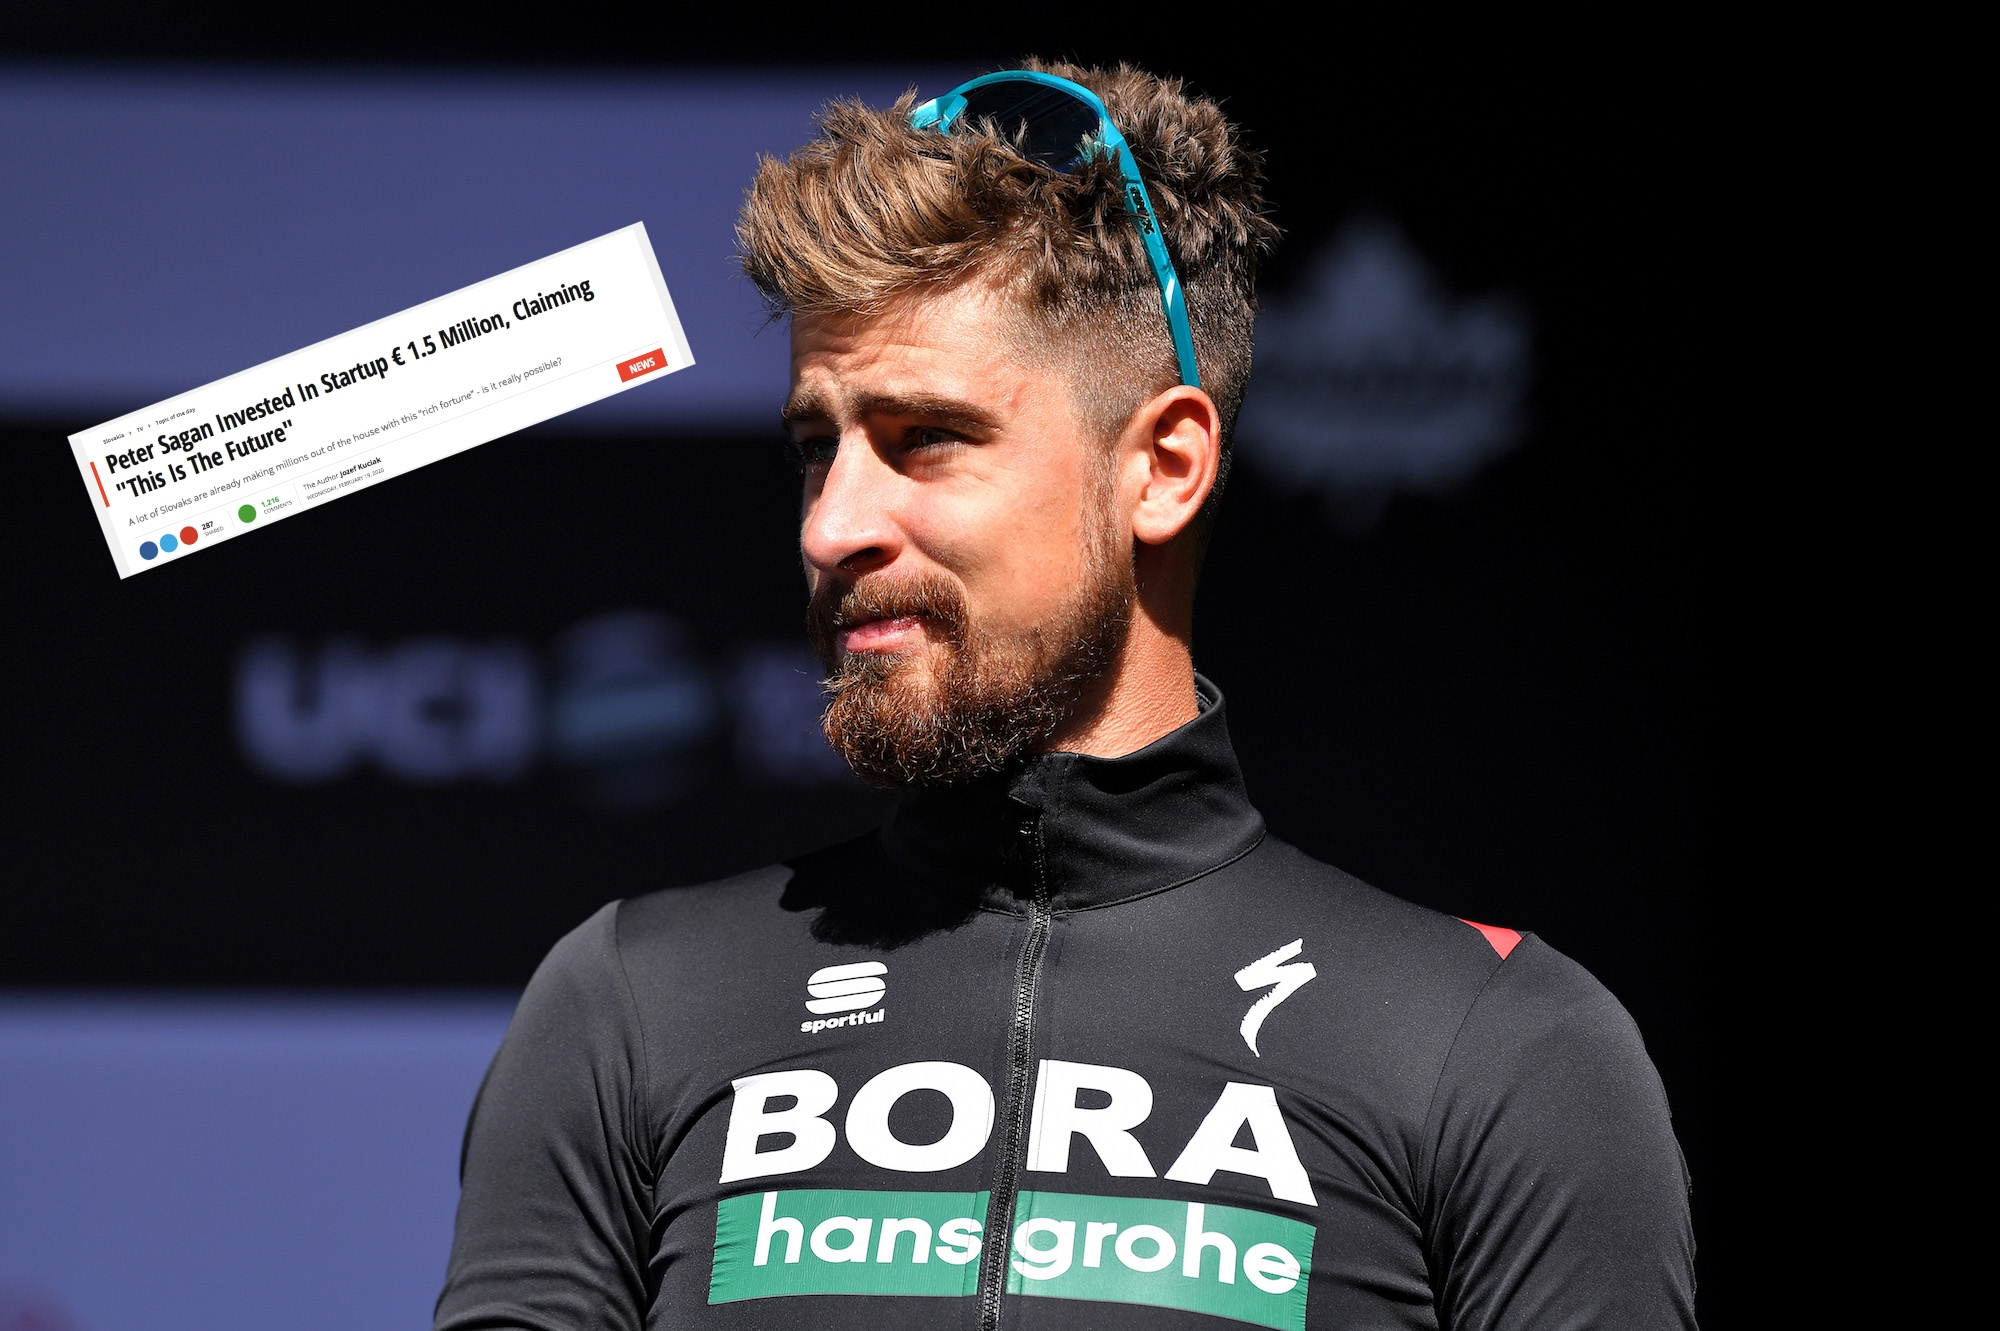 Peter Sagan forced to deny involvement in cryptocurrency scam after fake news article emerges - Cycling Weekly